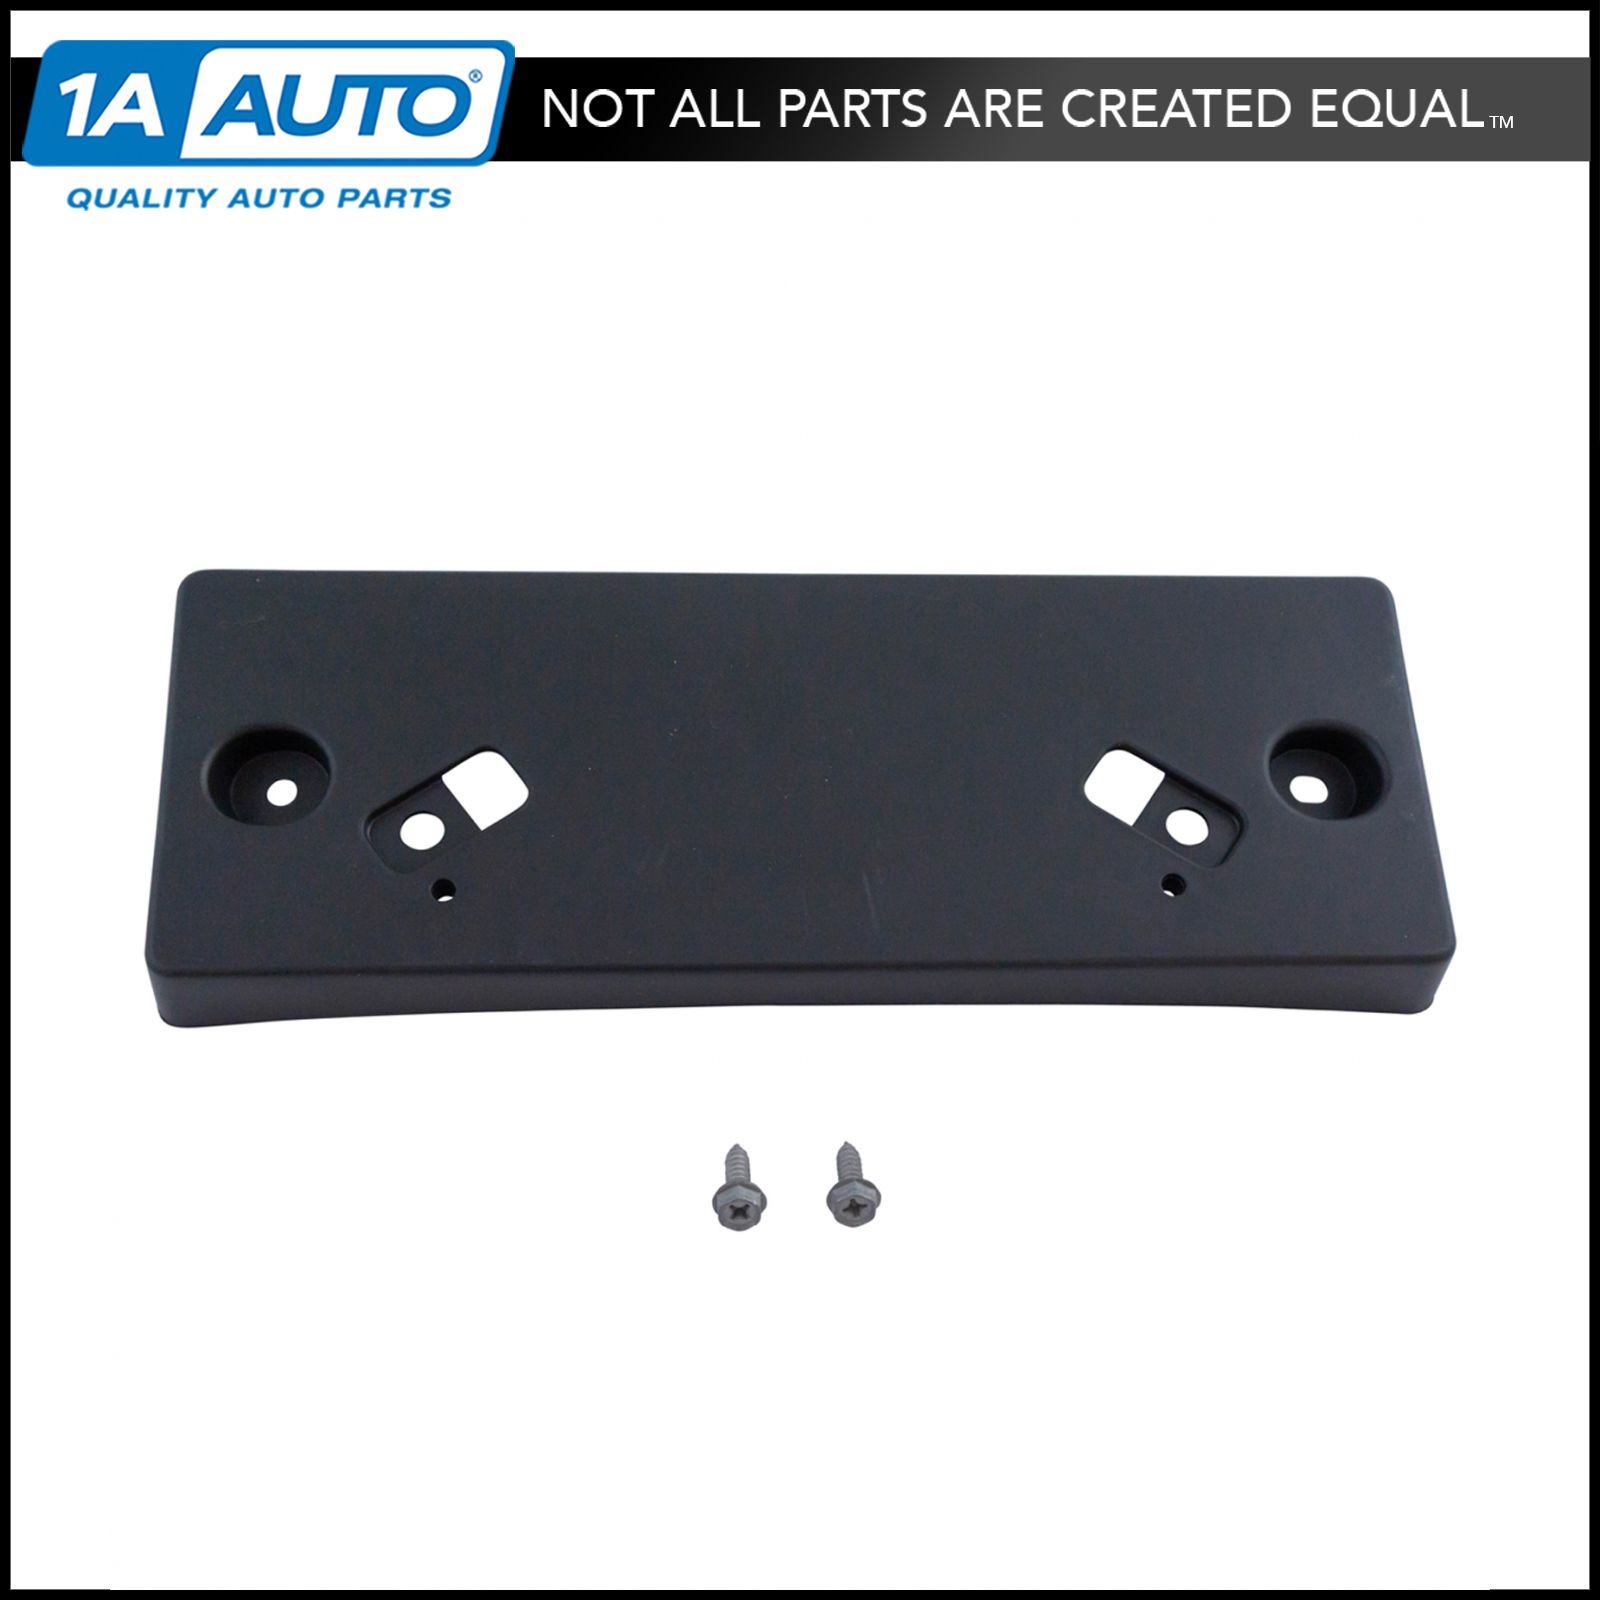 New Front License Plate Bracket For 2005-2018 Frontier 96210EA800 NI1068136